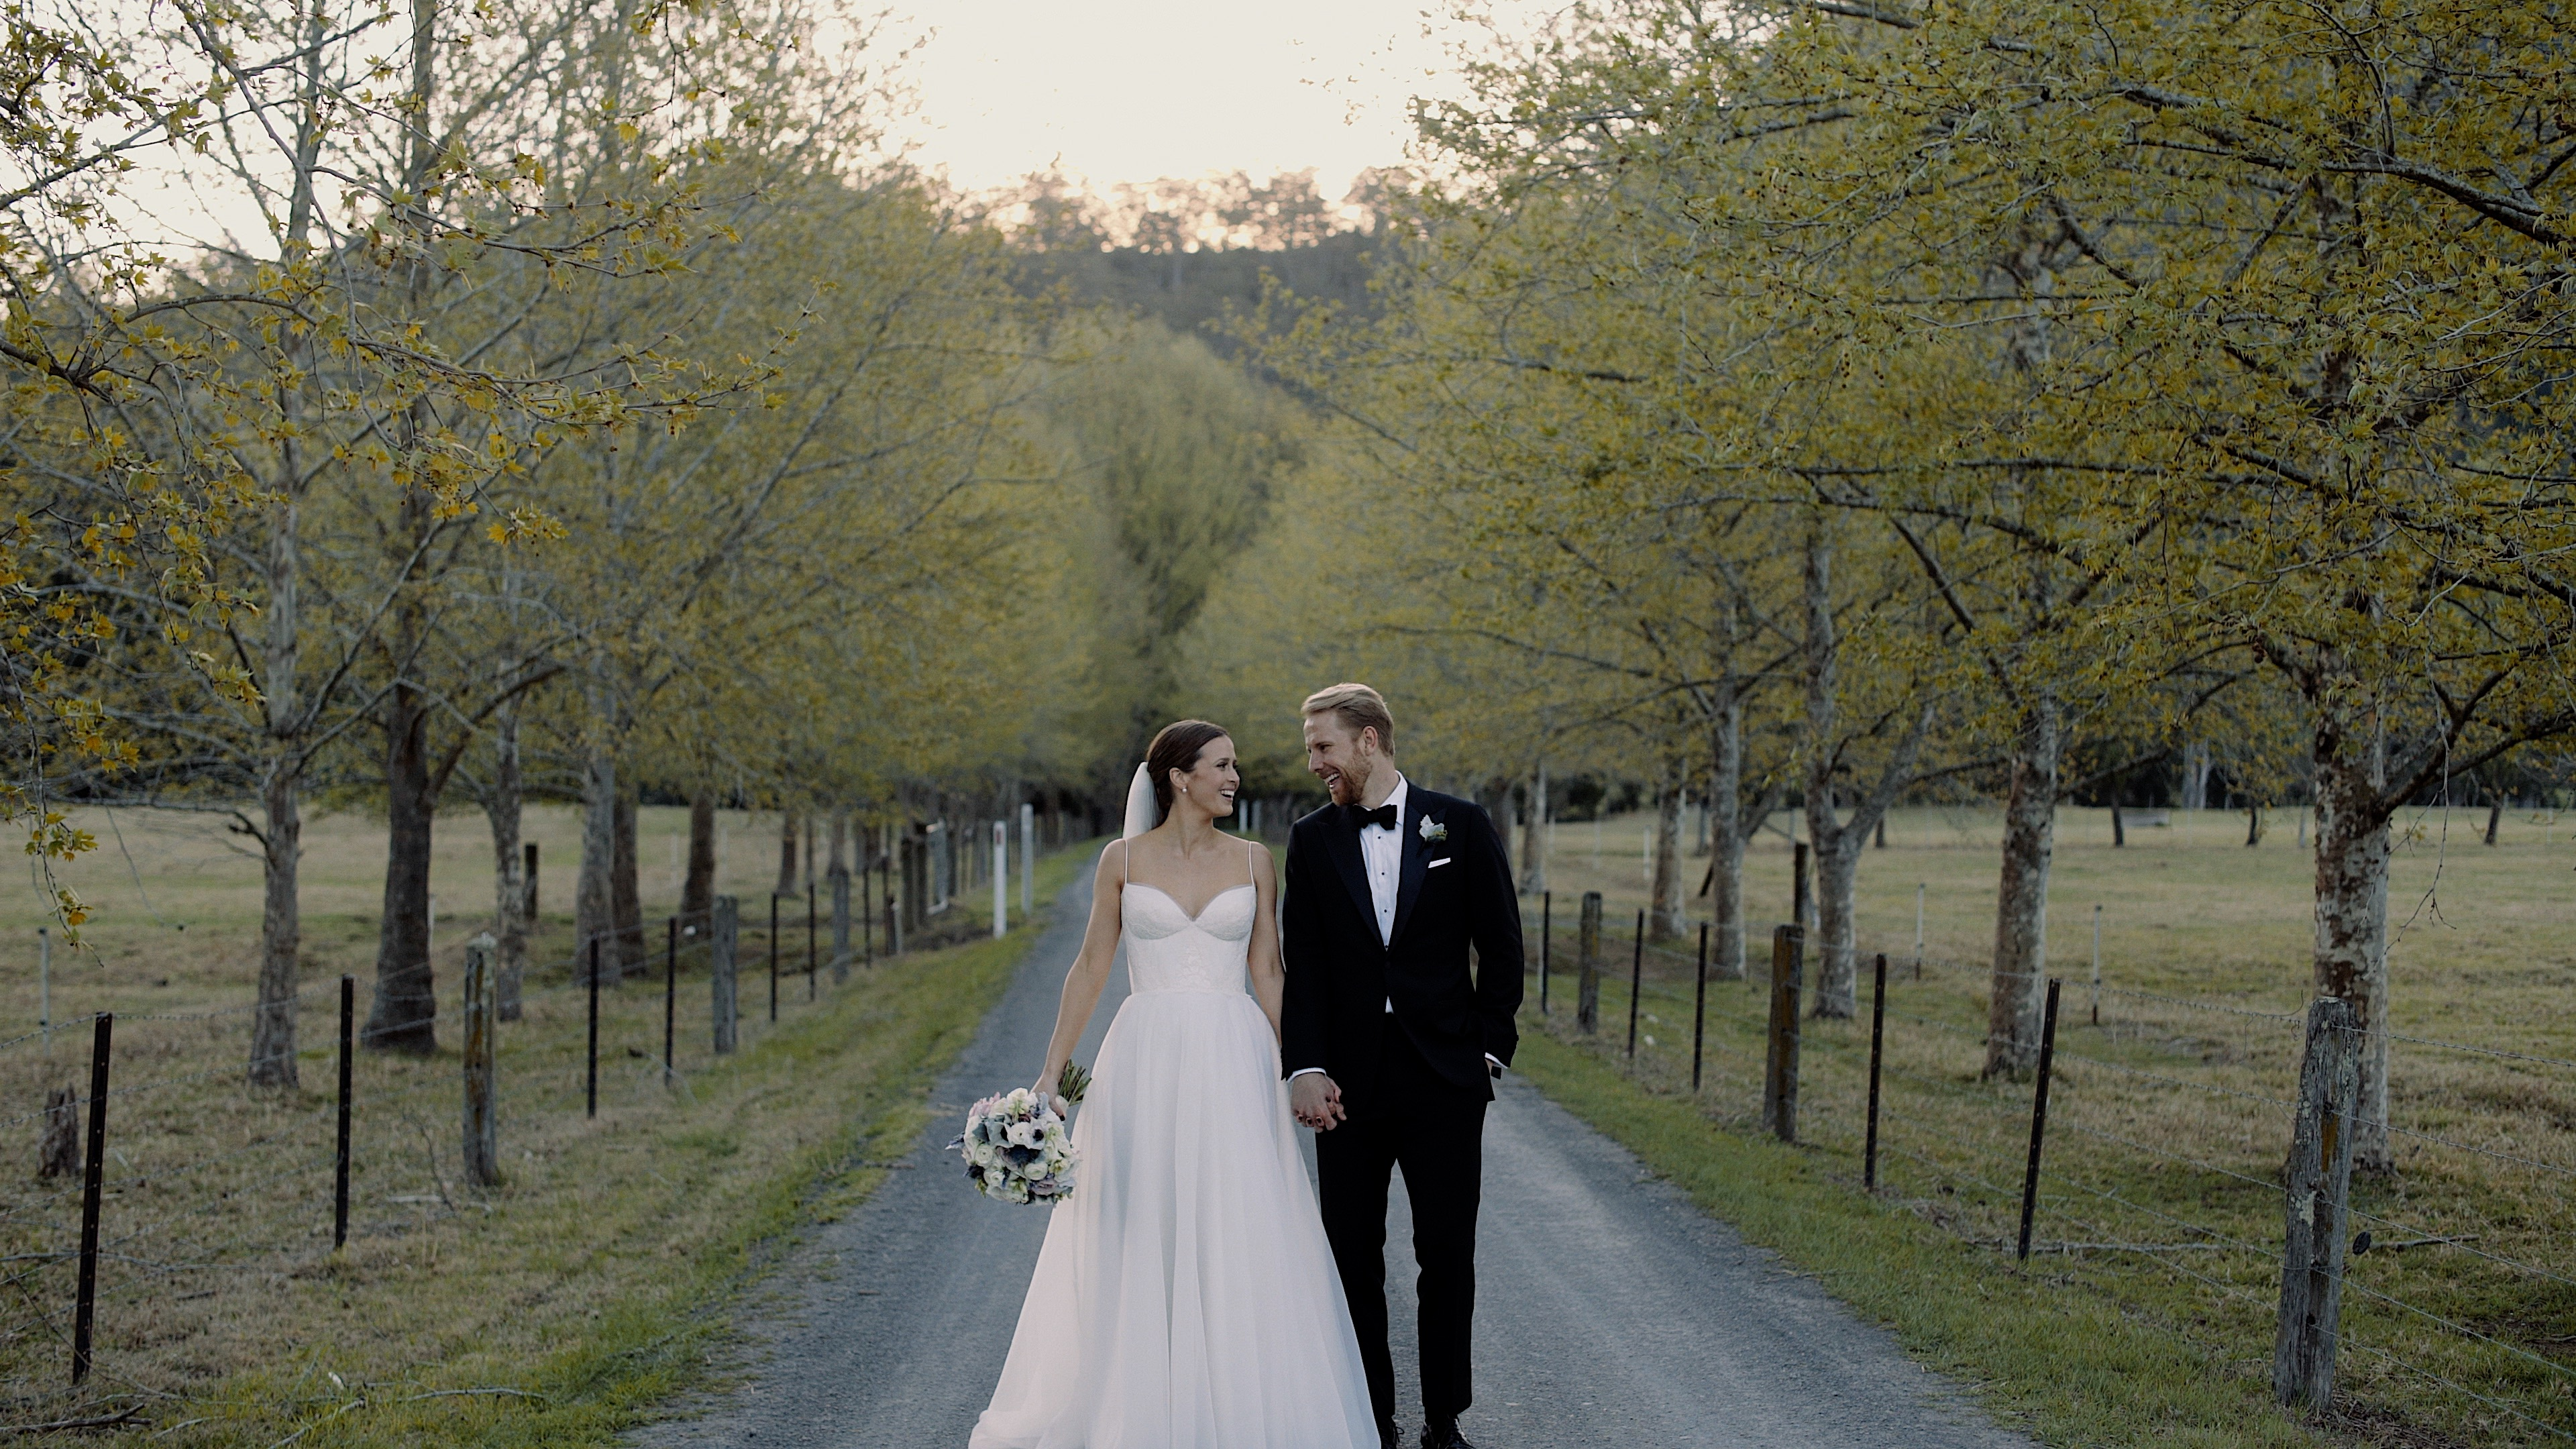 Zannie + Cam | Kangaroo Valley, Australia | Melross